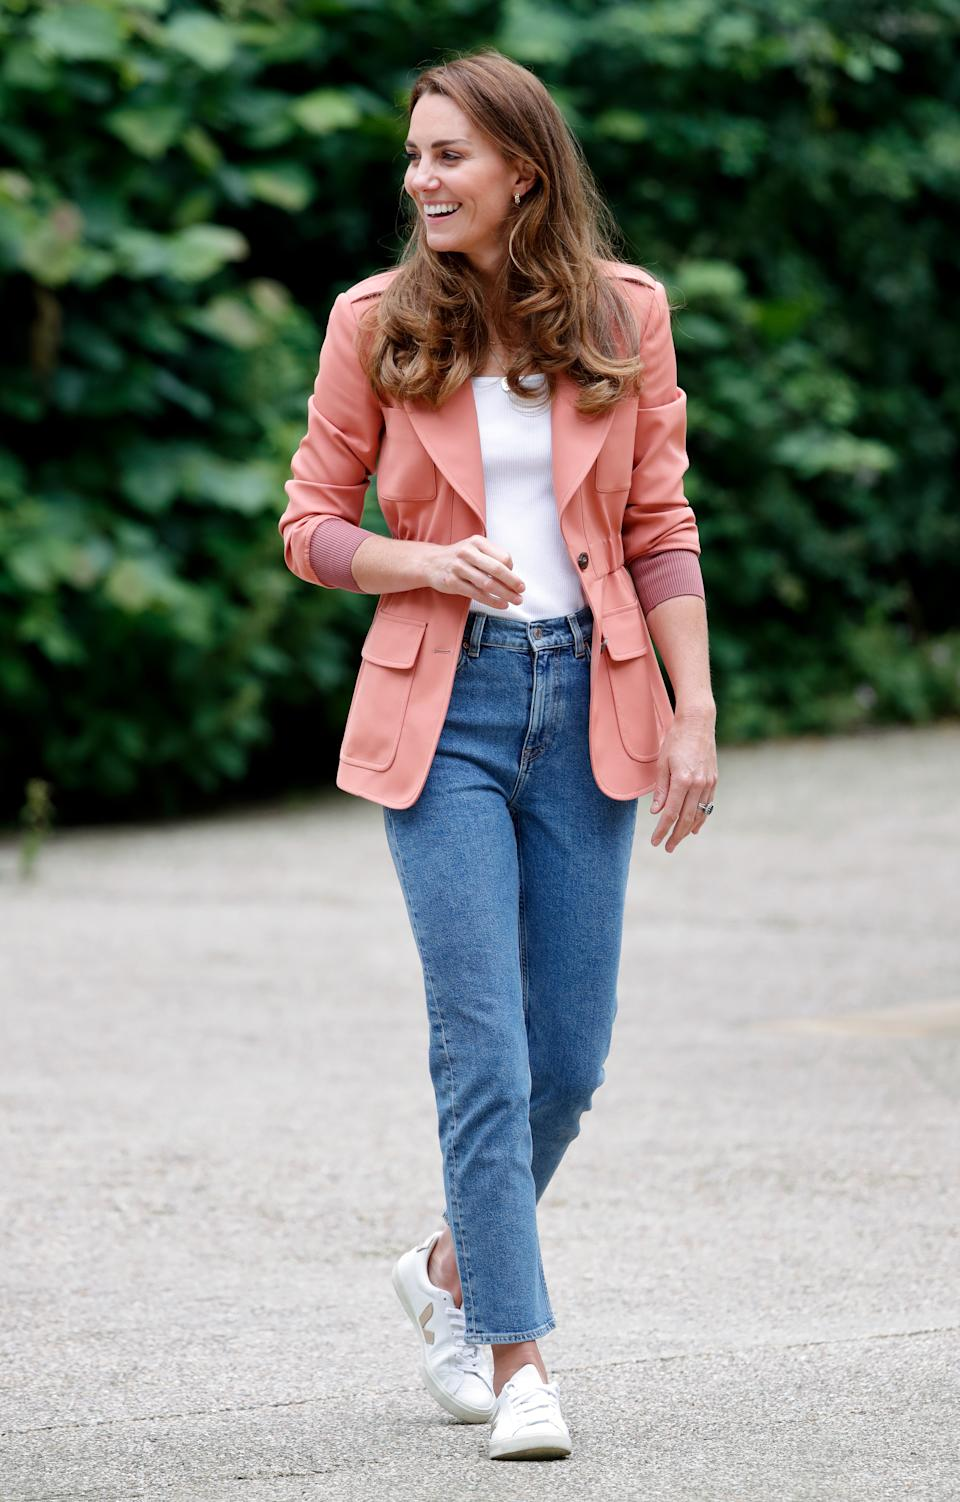 Kate Middleton wearing white Veja V-10 sneakers, blue jeans, a white shirt, and pink blazer during an engagement in London, England